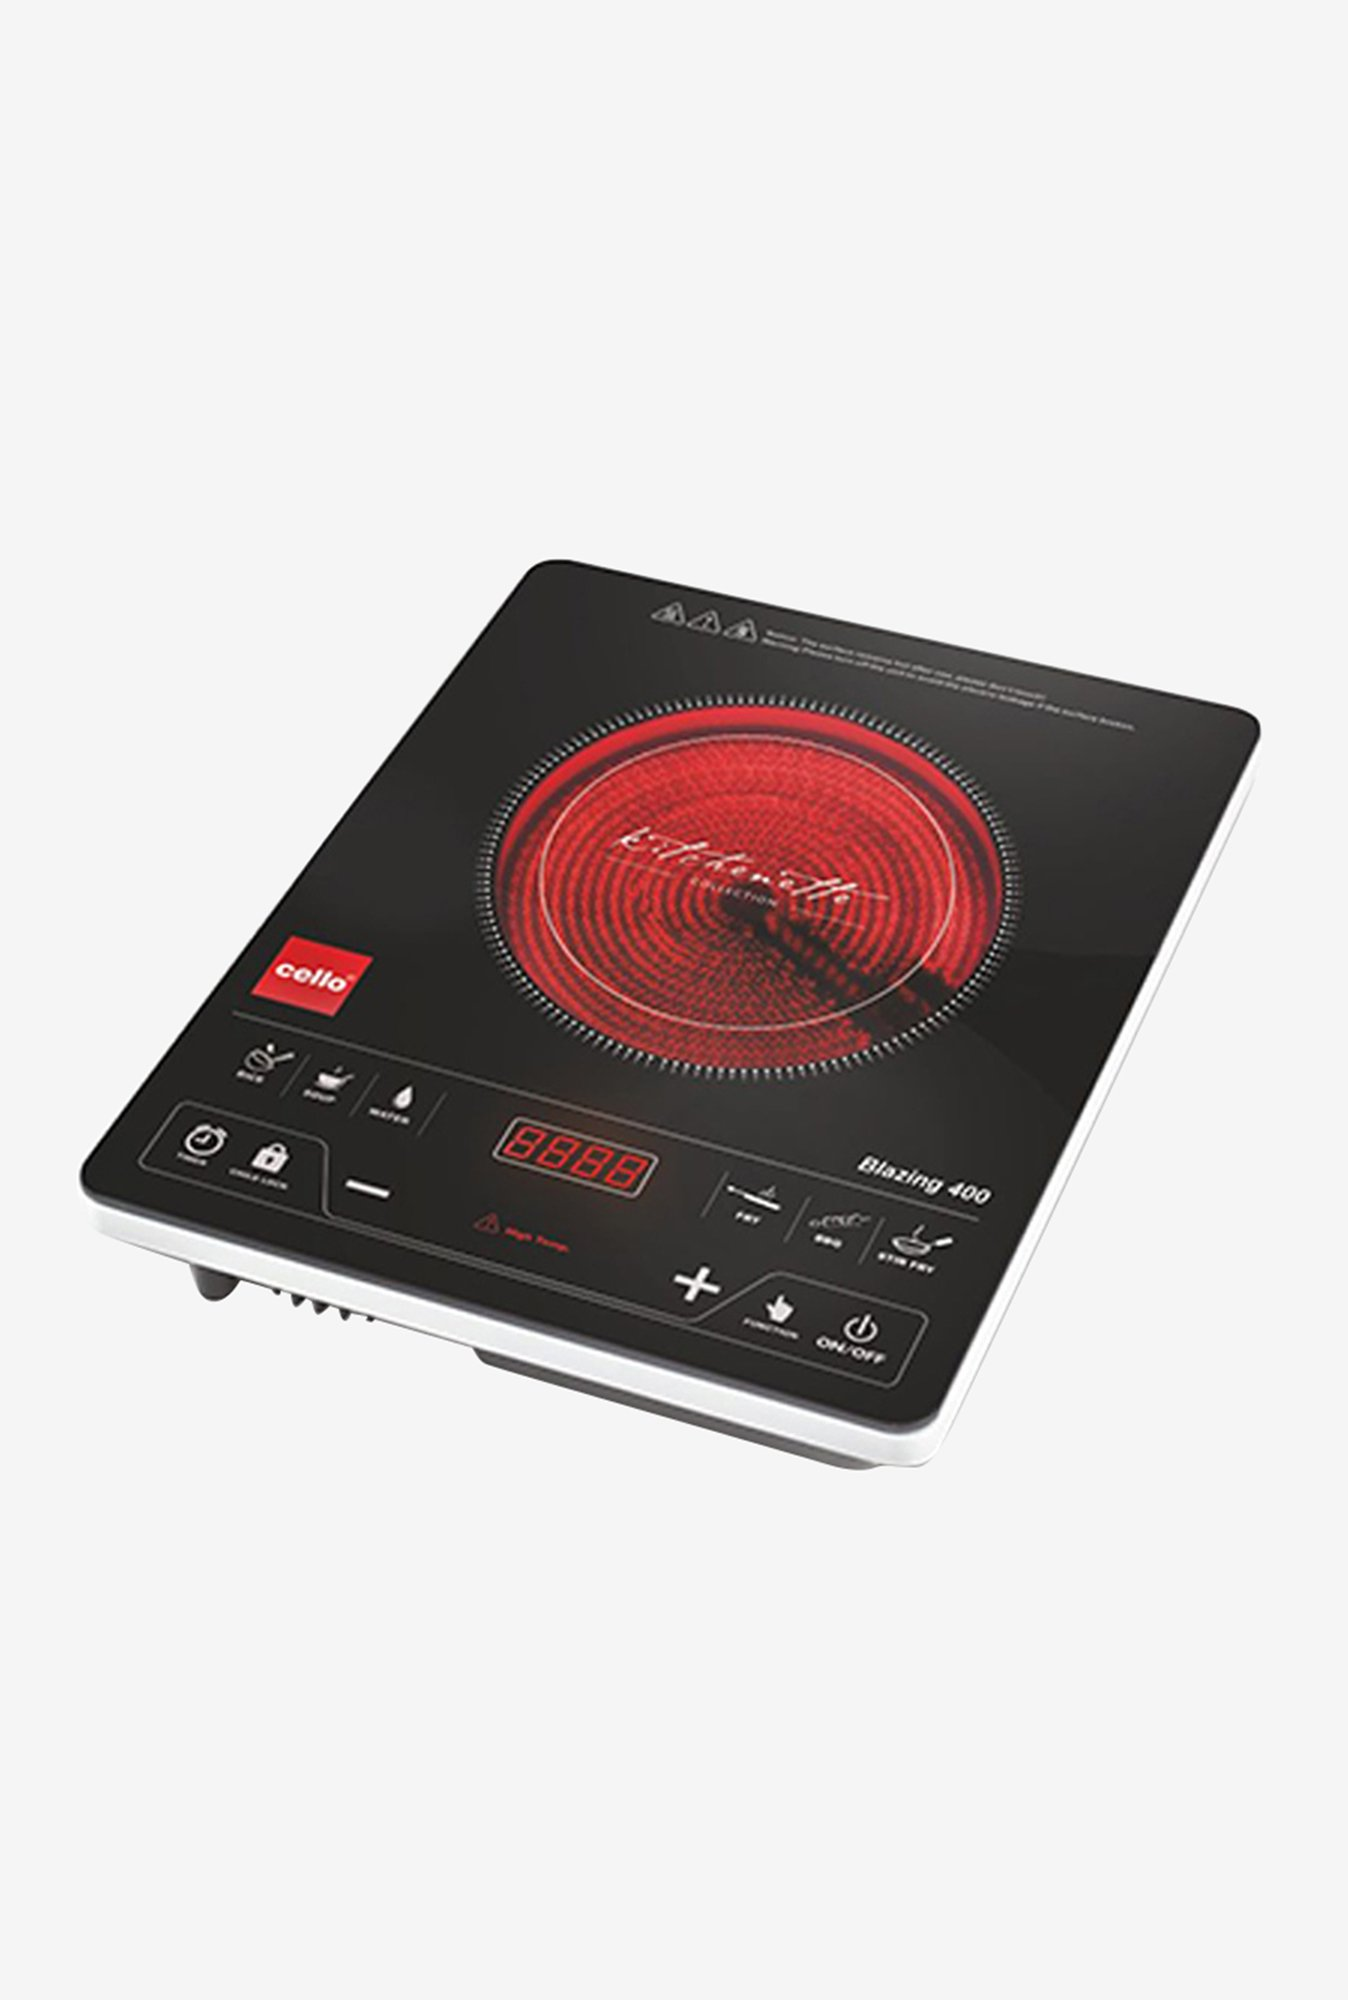 Cello Blazing 400 2000W Induction Cooker Black